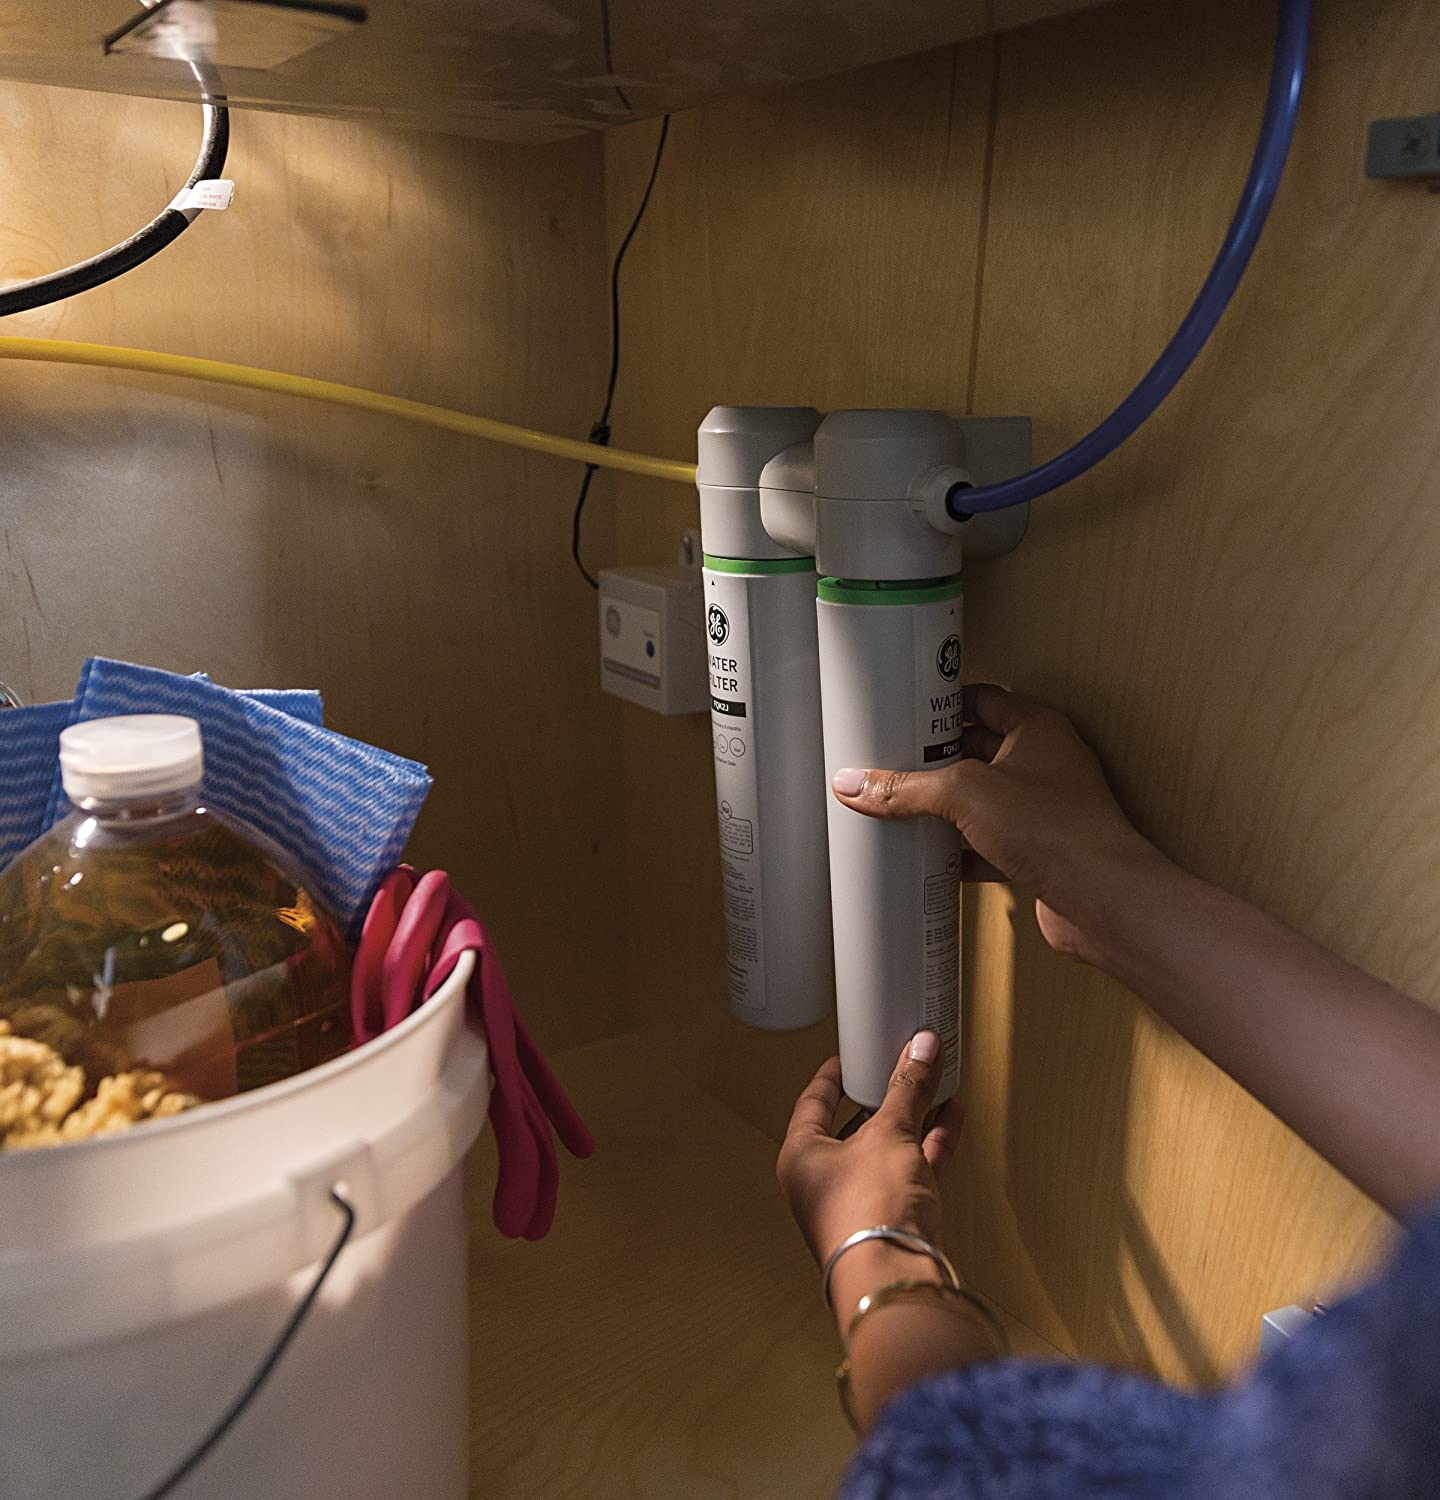 GE GXK285JBL Twist And Lock Under Counter Dual Flow Water Filtration System - -